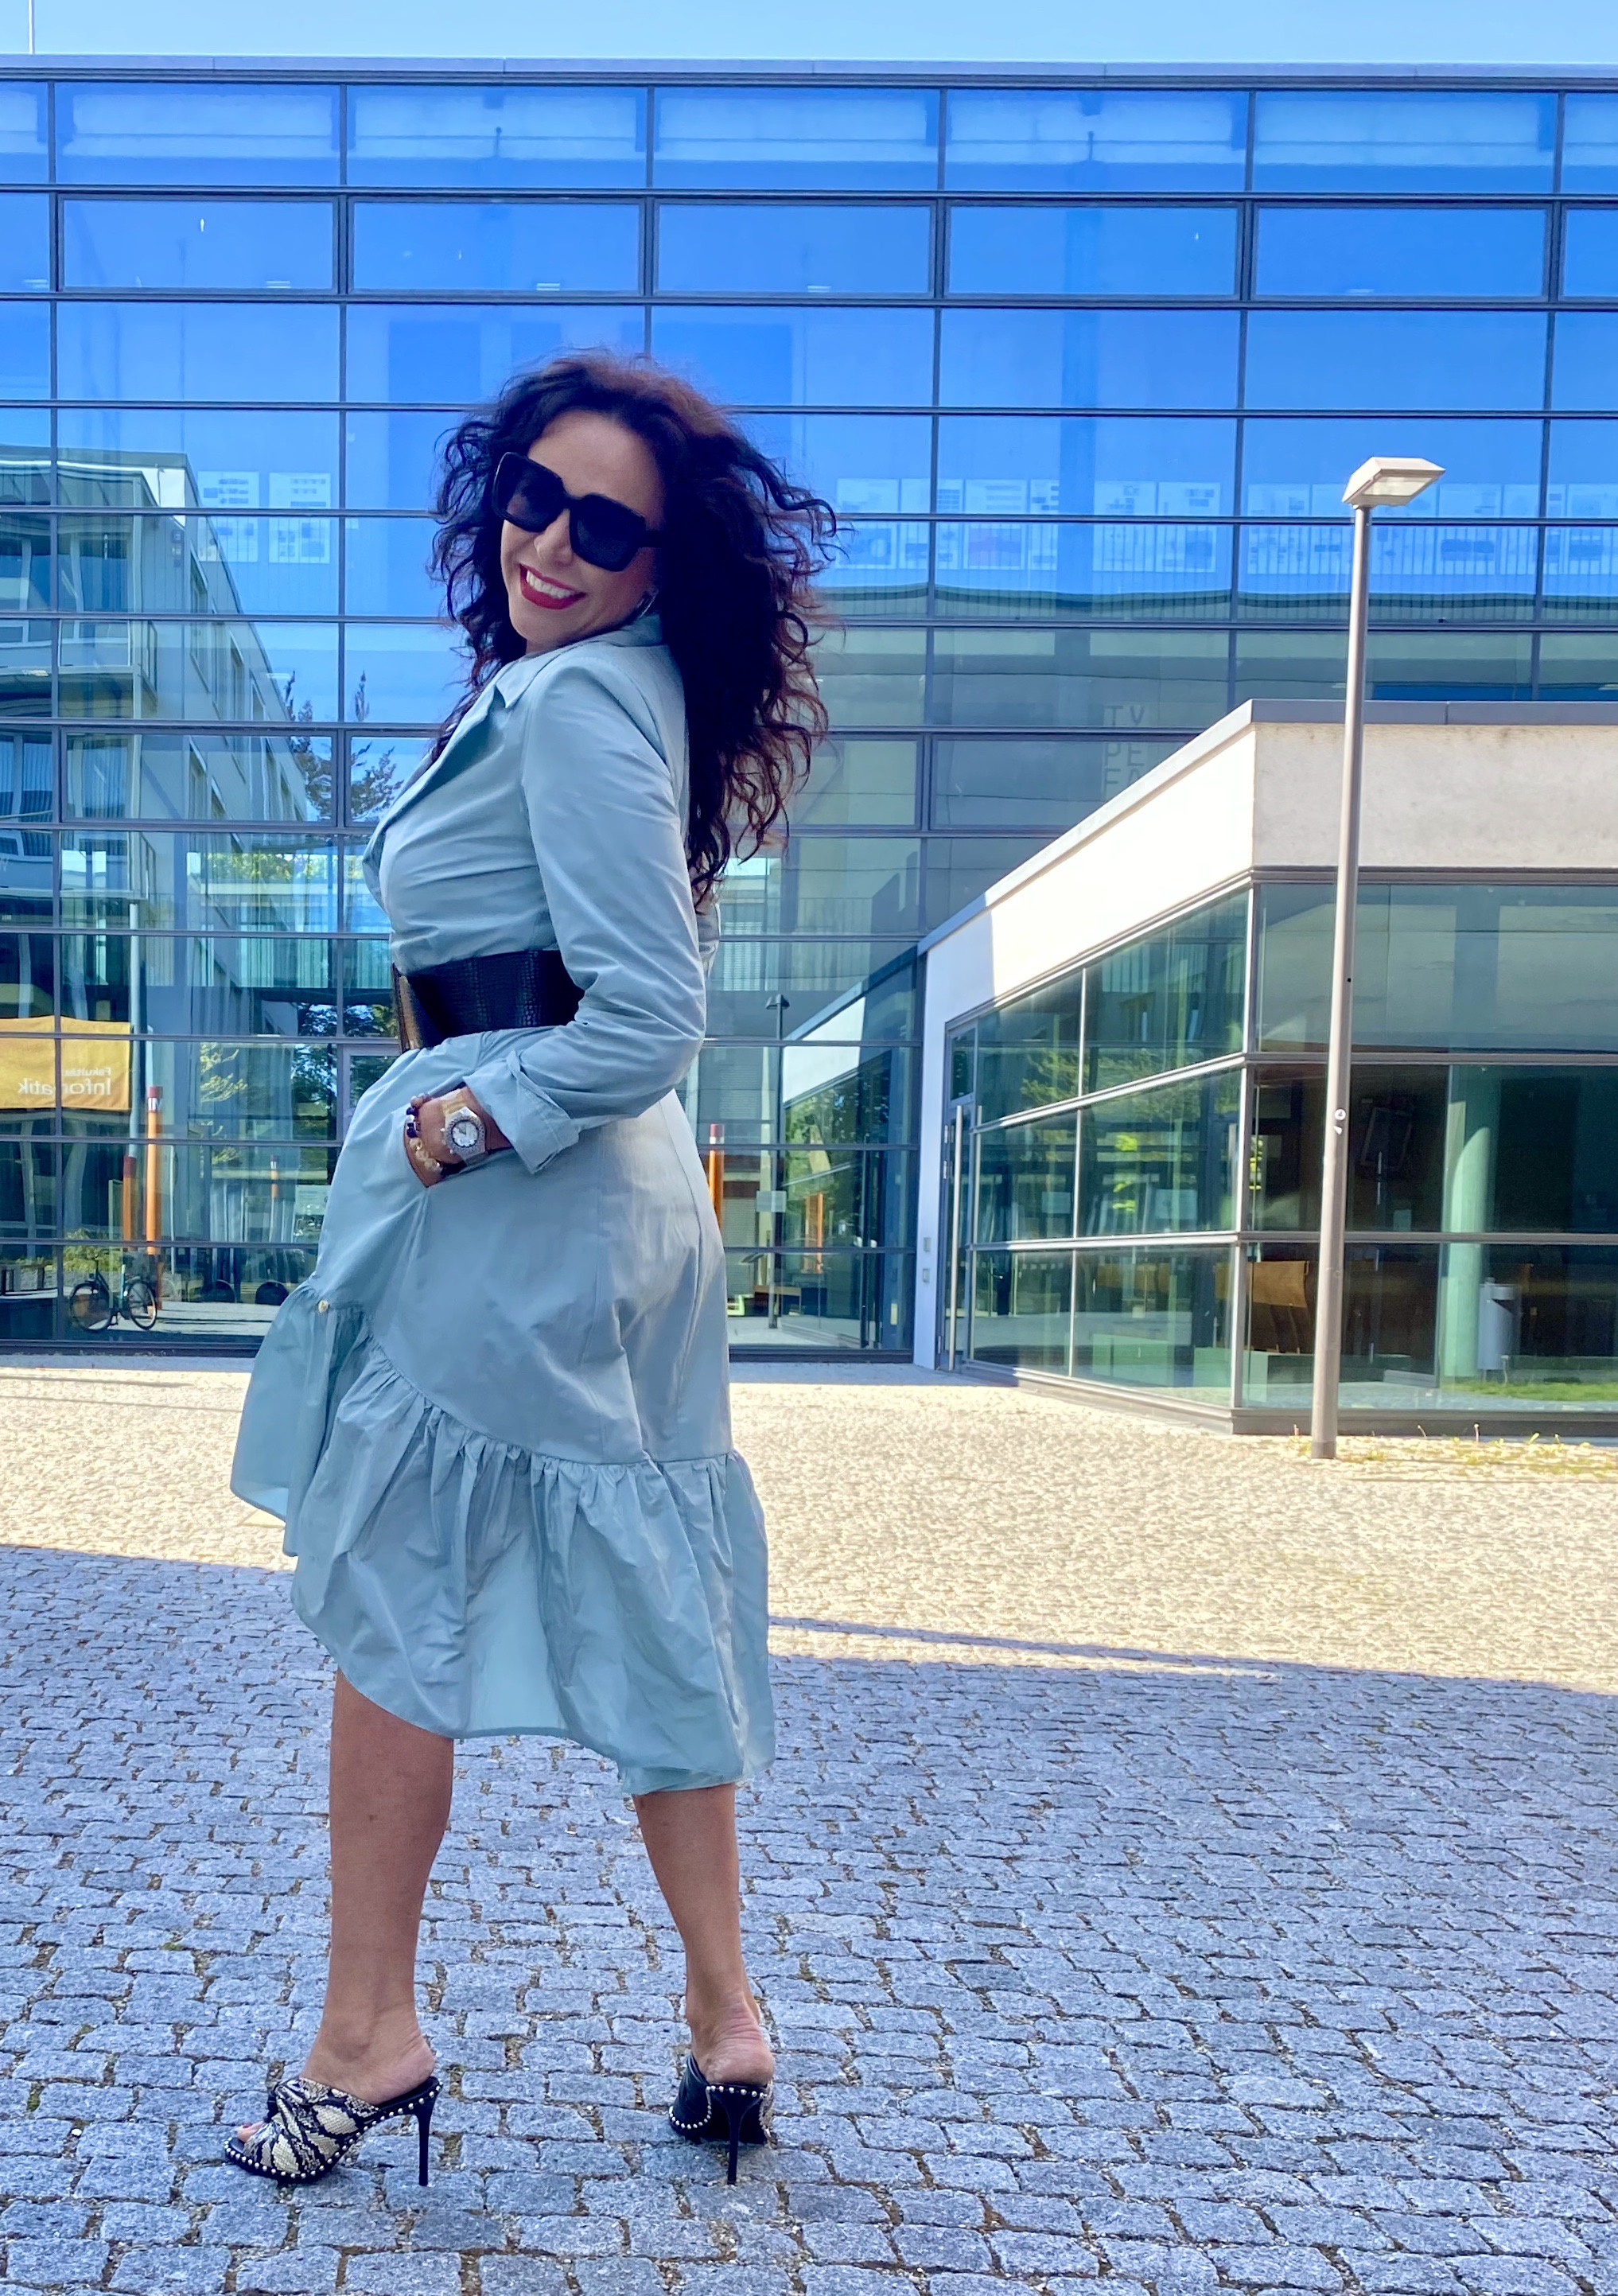 Mint coat Rinascimento, Burberry shades, Alexander Wang New York shoes, mystyle, ageless, Fashionandtravel, stylish, Fashionblog Augsburg, italian fashion, eyewear, mode, Damenmode, Trends 2020, Mantel, cochastyle, streetstyle, streetfashion